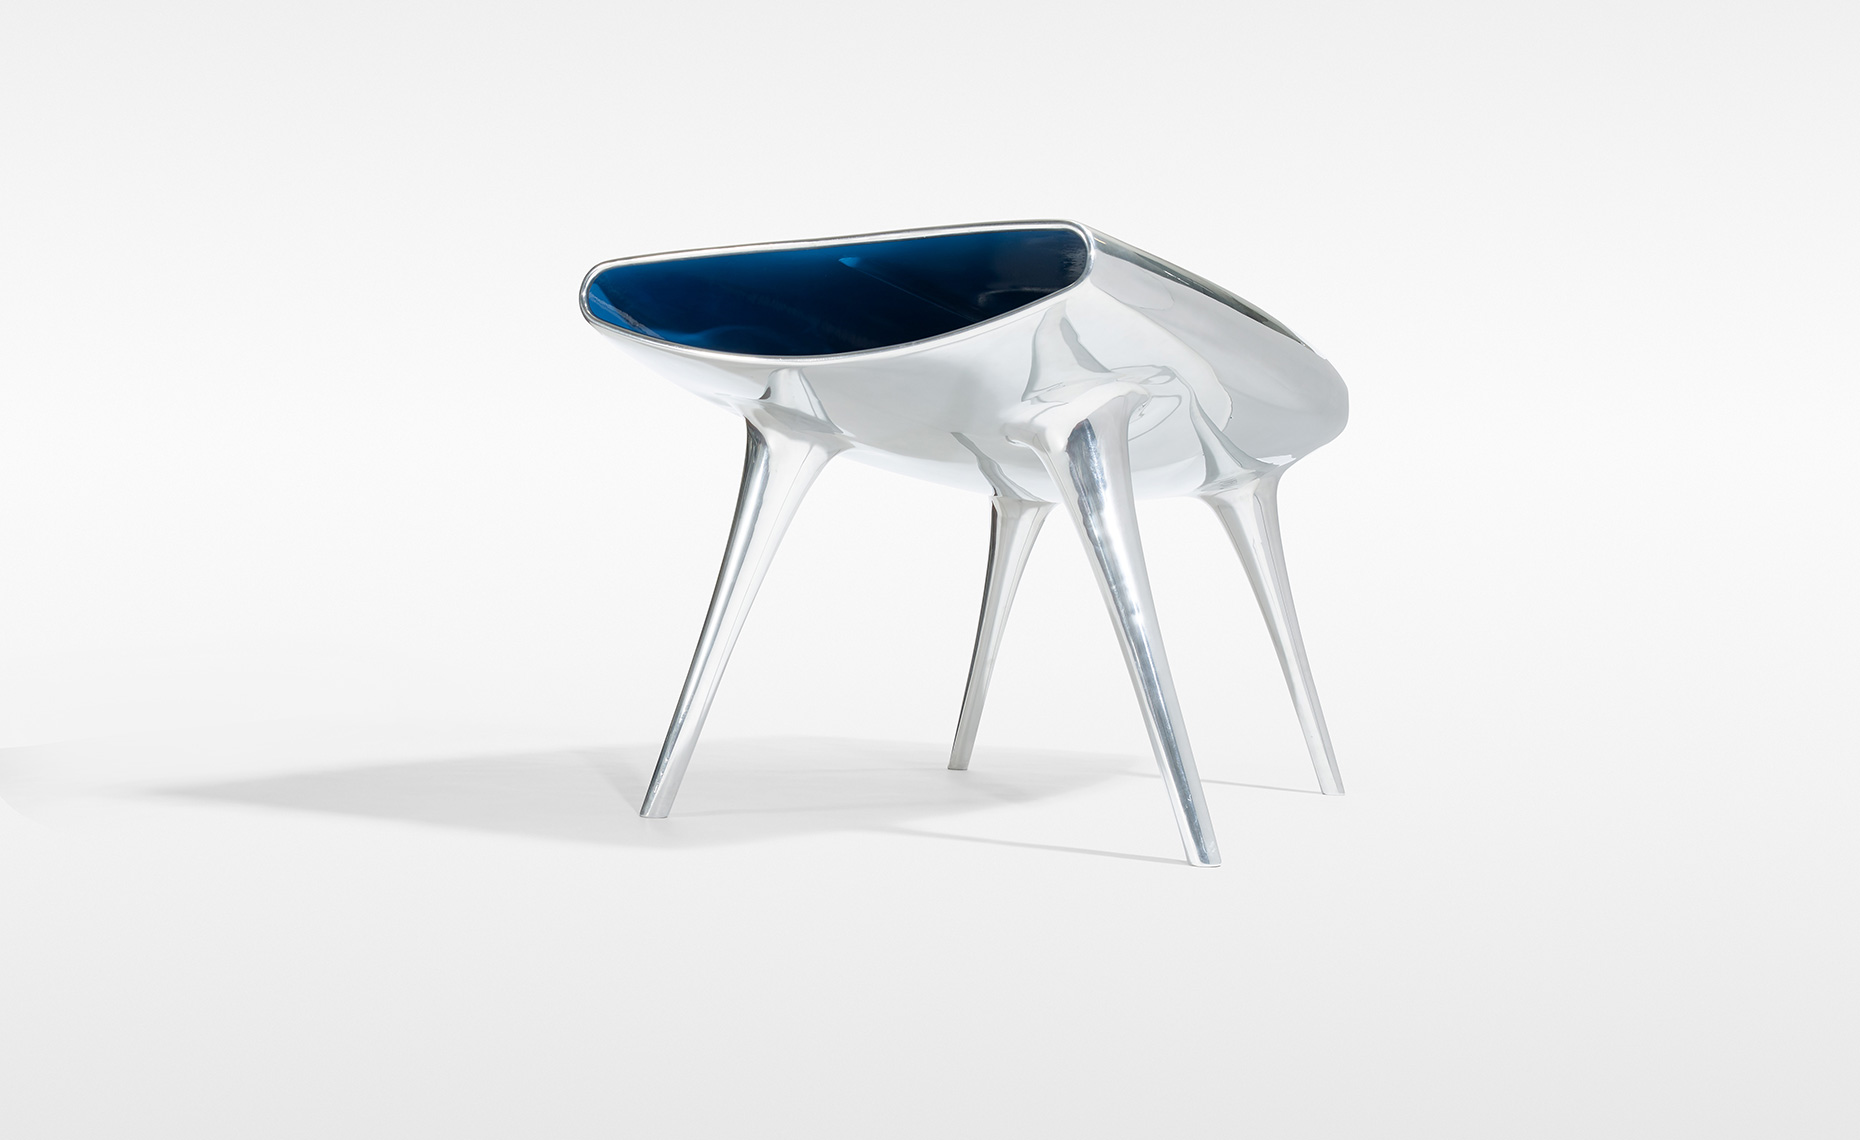 Ross Floyd - Marc Newson Desk